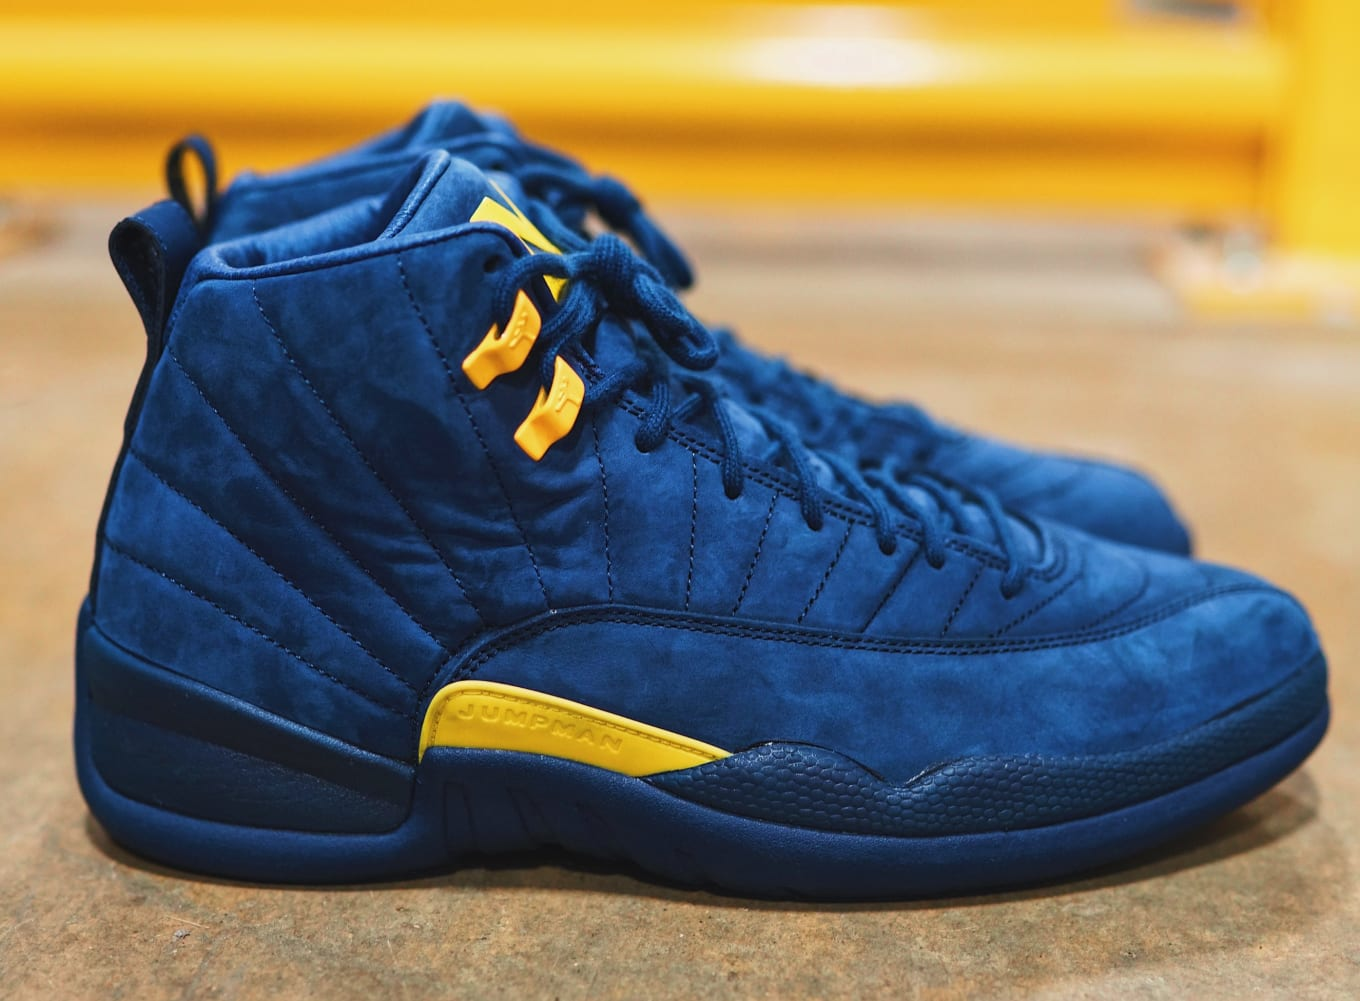 302fc462f1ce07 Michigan  Air Jordan 12 College Navy Amarillo BQ3180-407 Release ...